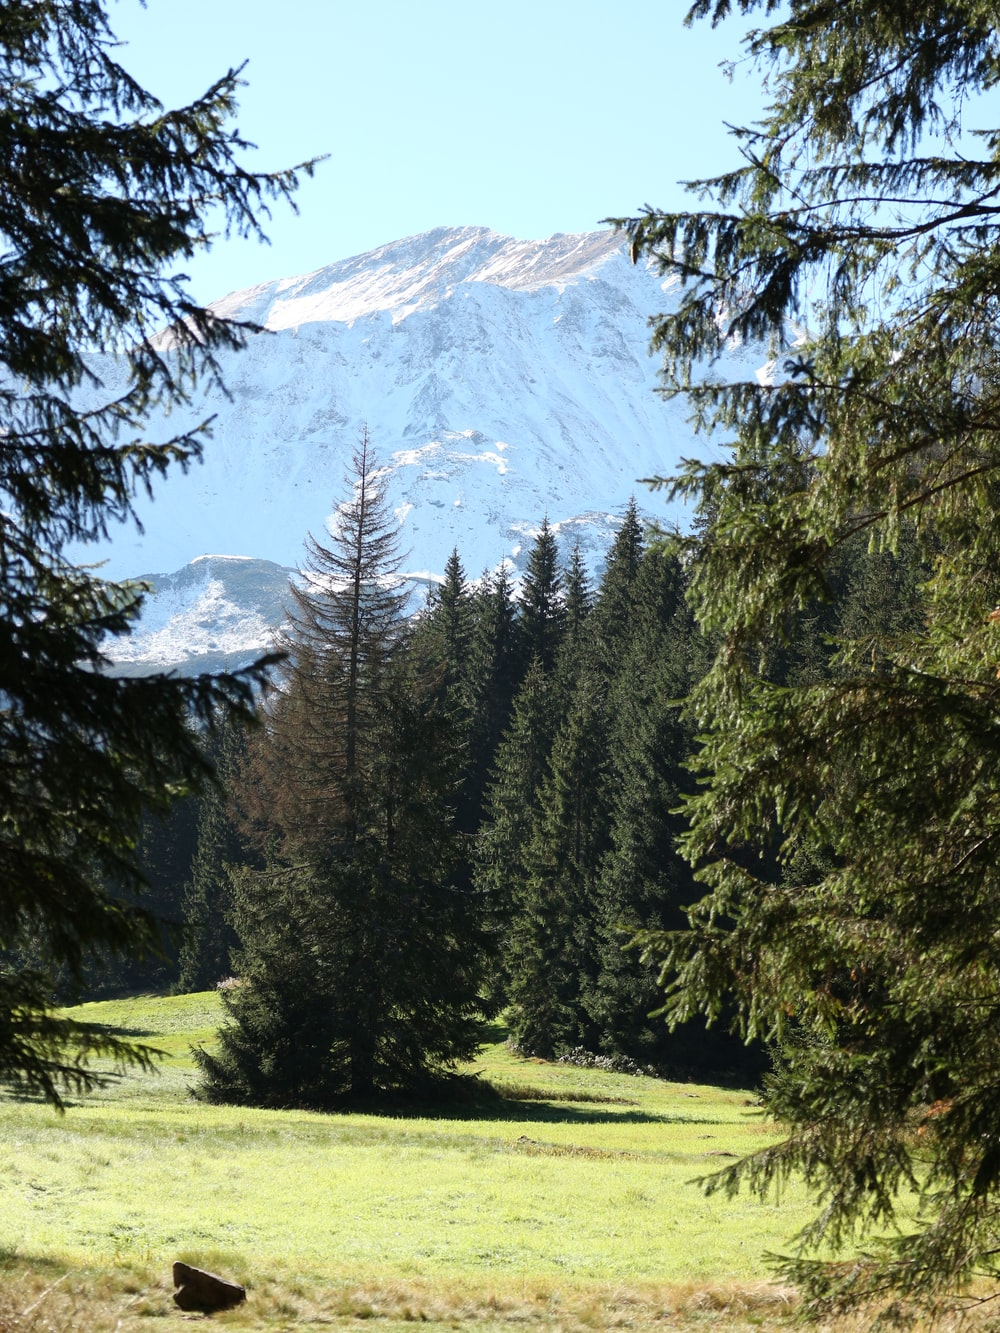 forest overlooking snow capped mountain range